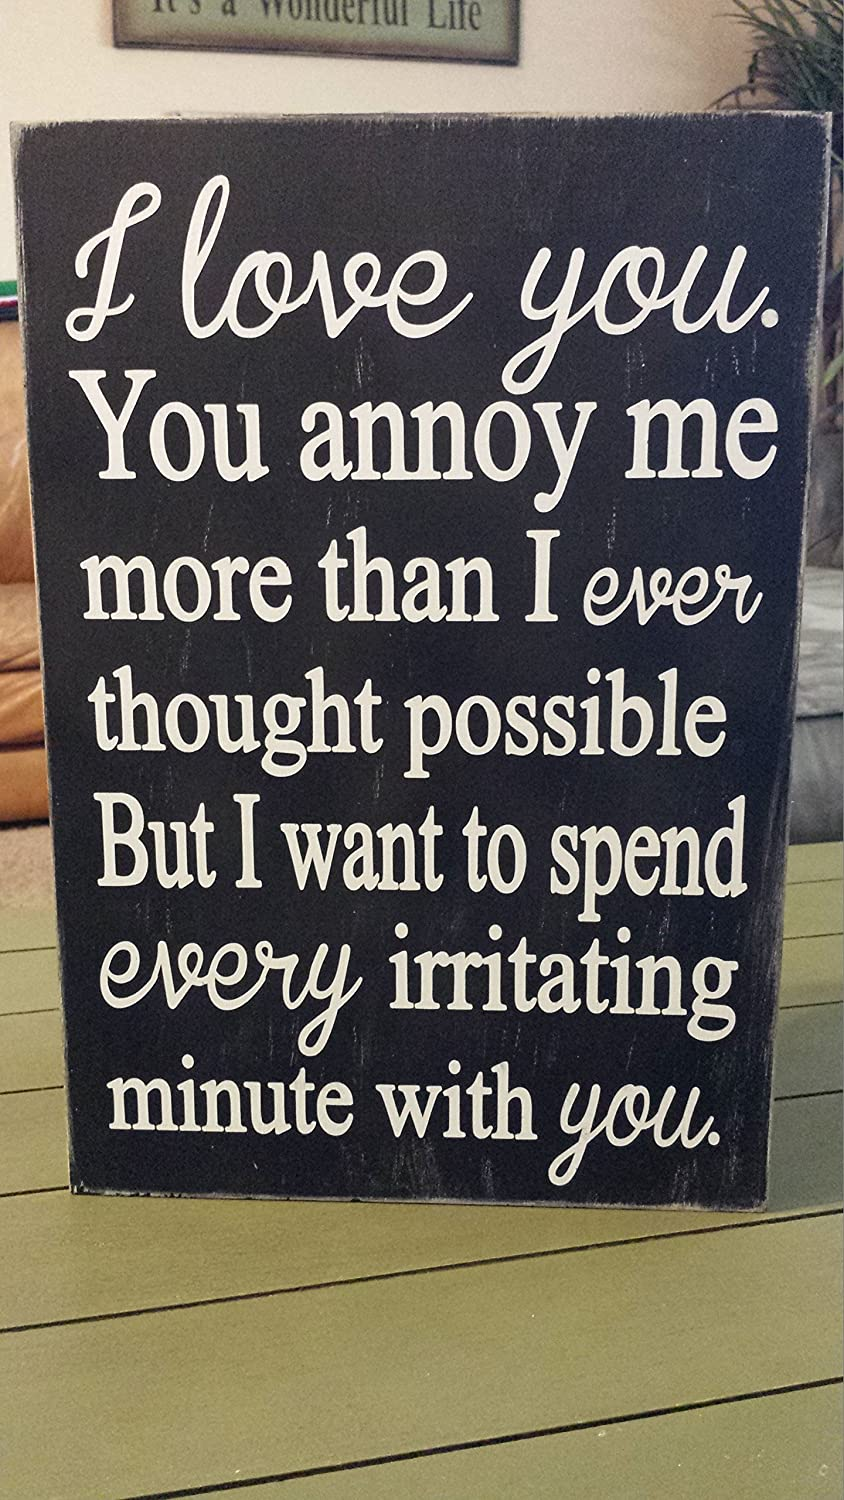 And My Favorite Funny Relationship Quotes Sign